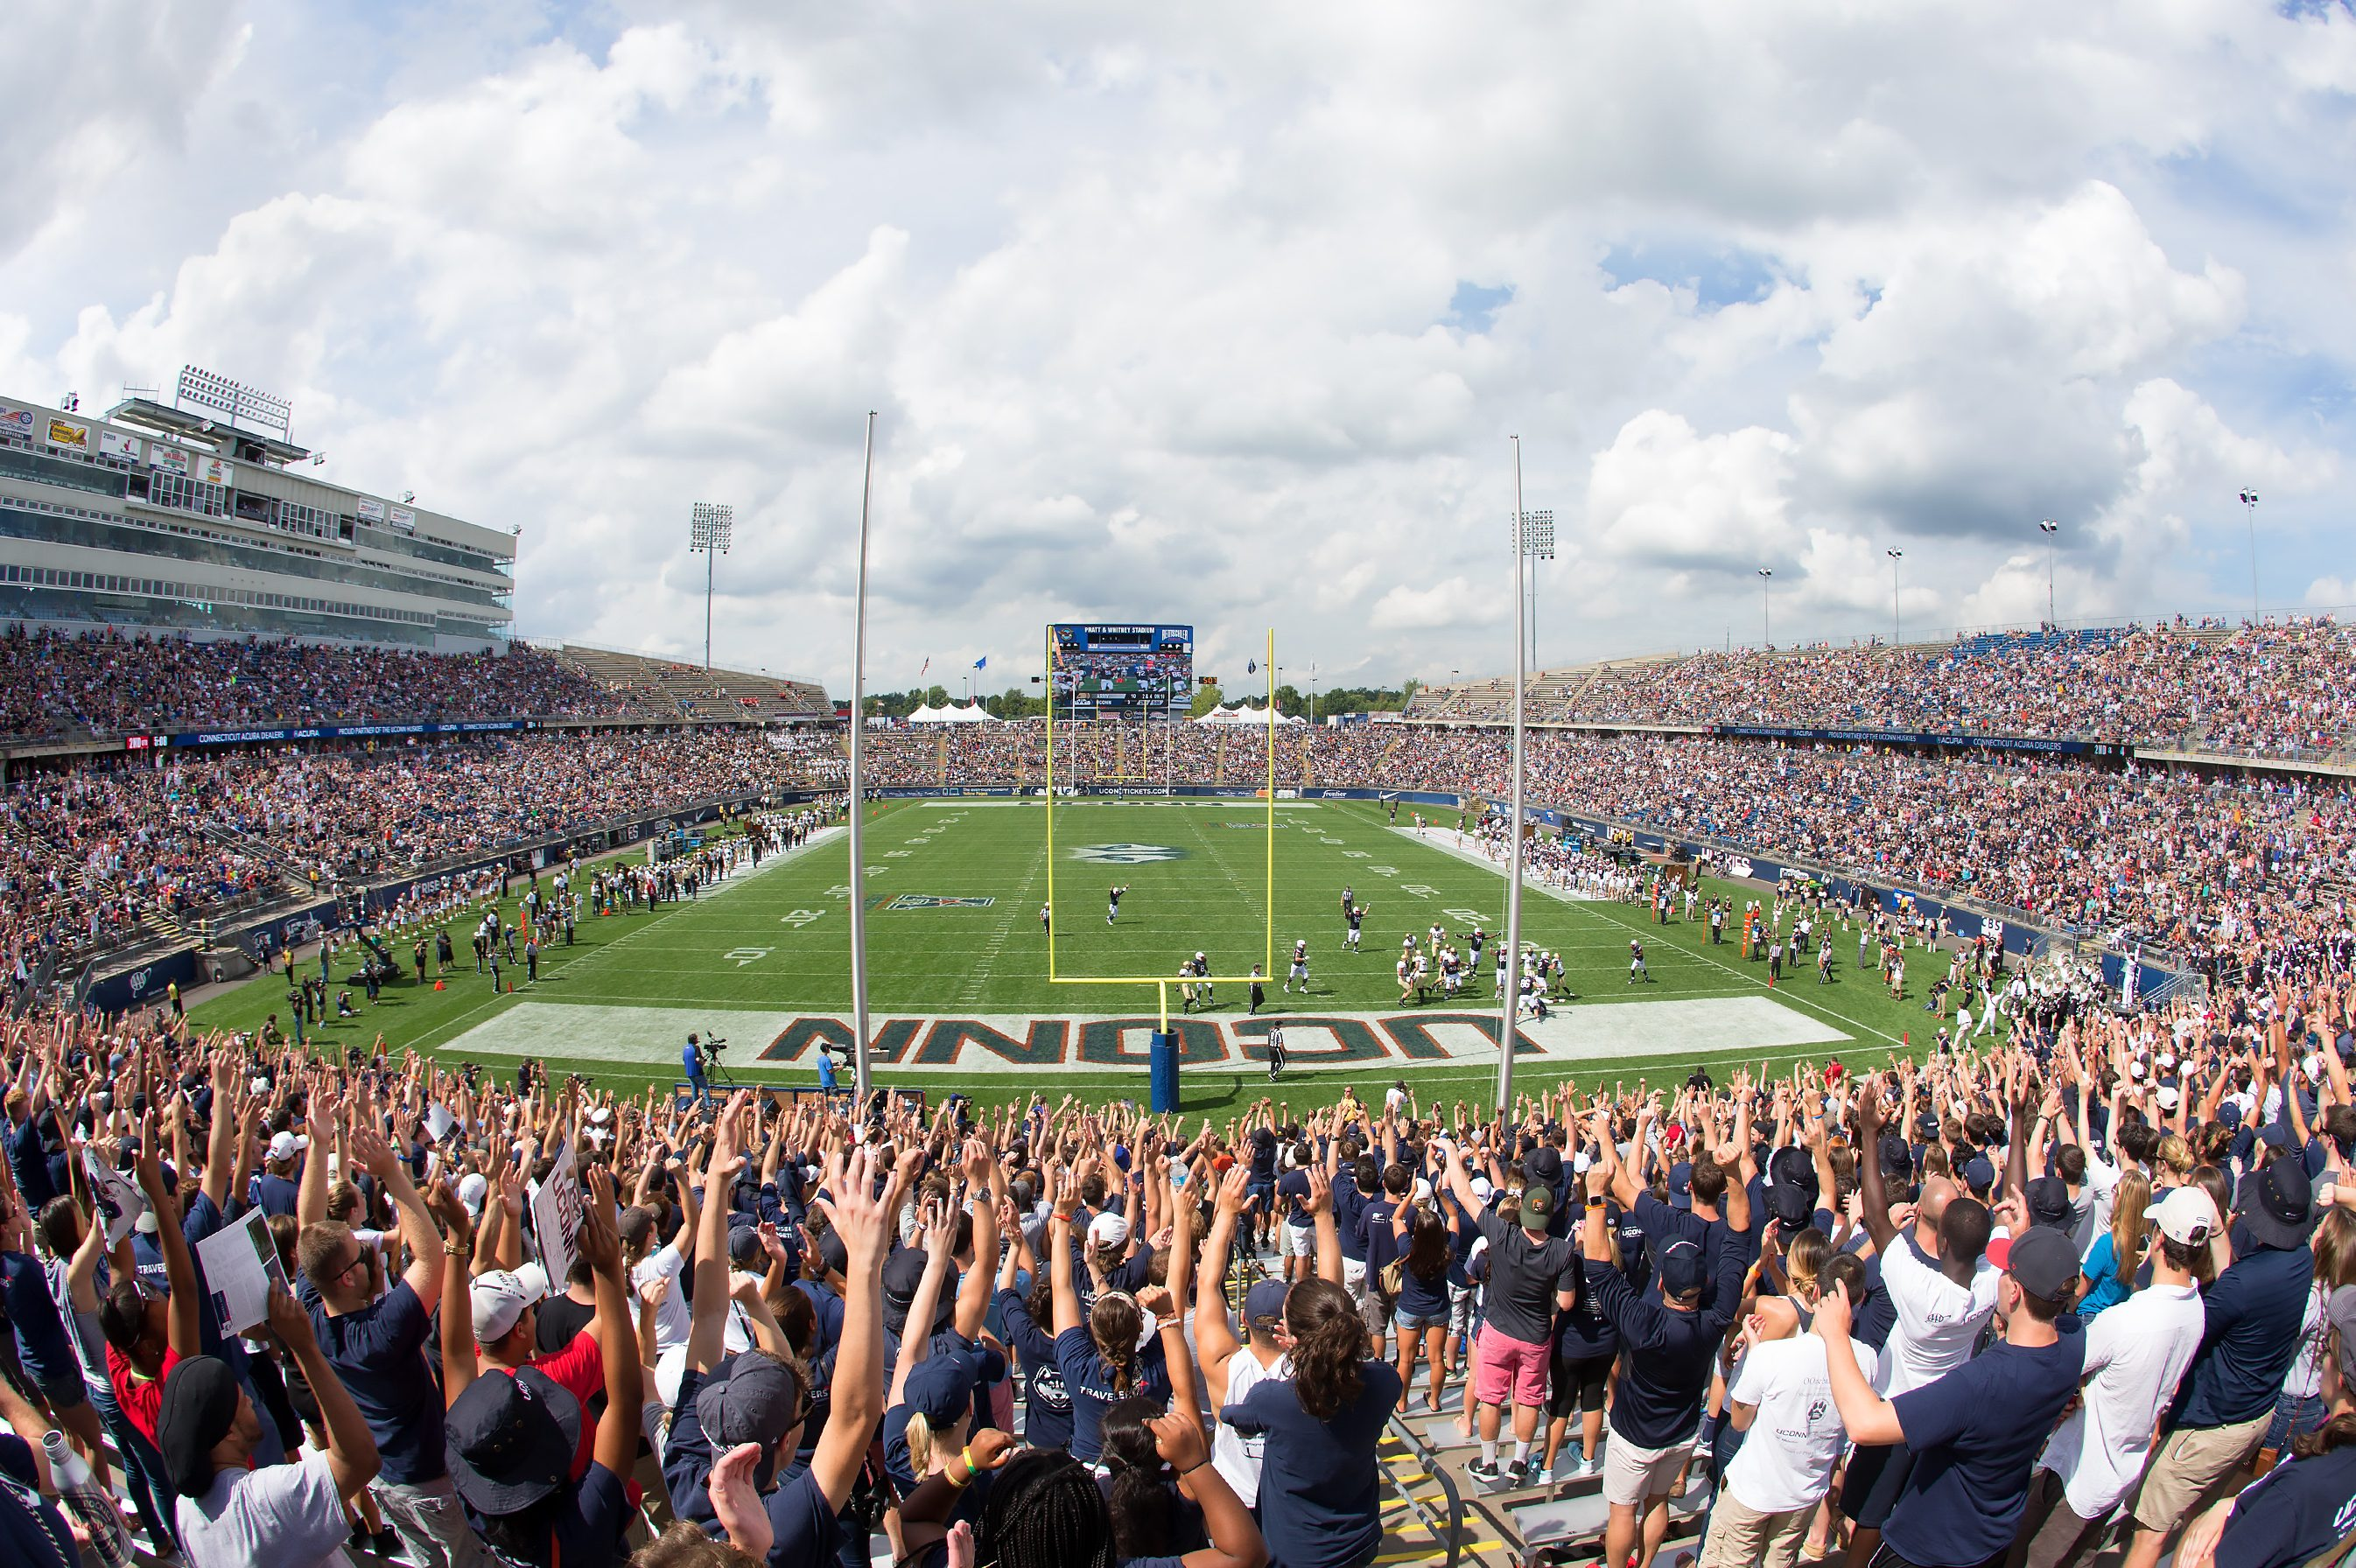 A UConn Football home game at Pratt & Whitney Stadium at Rentschler Field. (Stephen Slade '89 (SFA) for UConn)